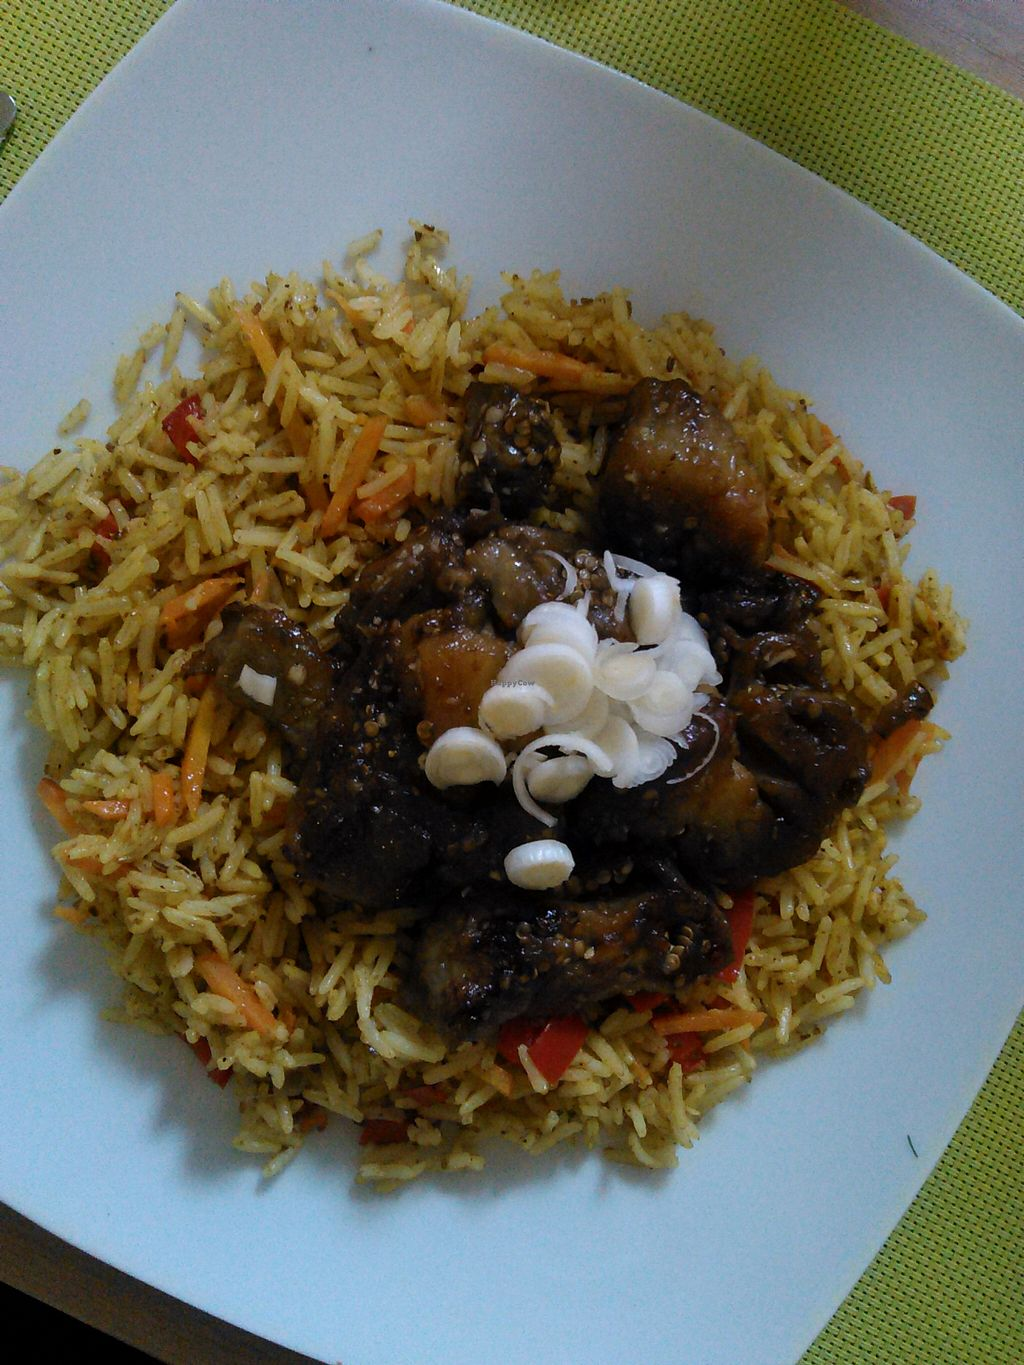 """Photo of BIOFresh  by <a href=""""/members/profile/alexandra_vegan"""">alexandra_vegan</a> <br/>Eggplant basmati rice. They changes the recipe and now they use strong spices. Not for everyone. May contain honey (ask the waiter) <br/> March 7, 2016  - <a href='/contact/abuse/image/62092/139216'>Report</a>"""